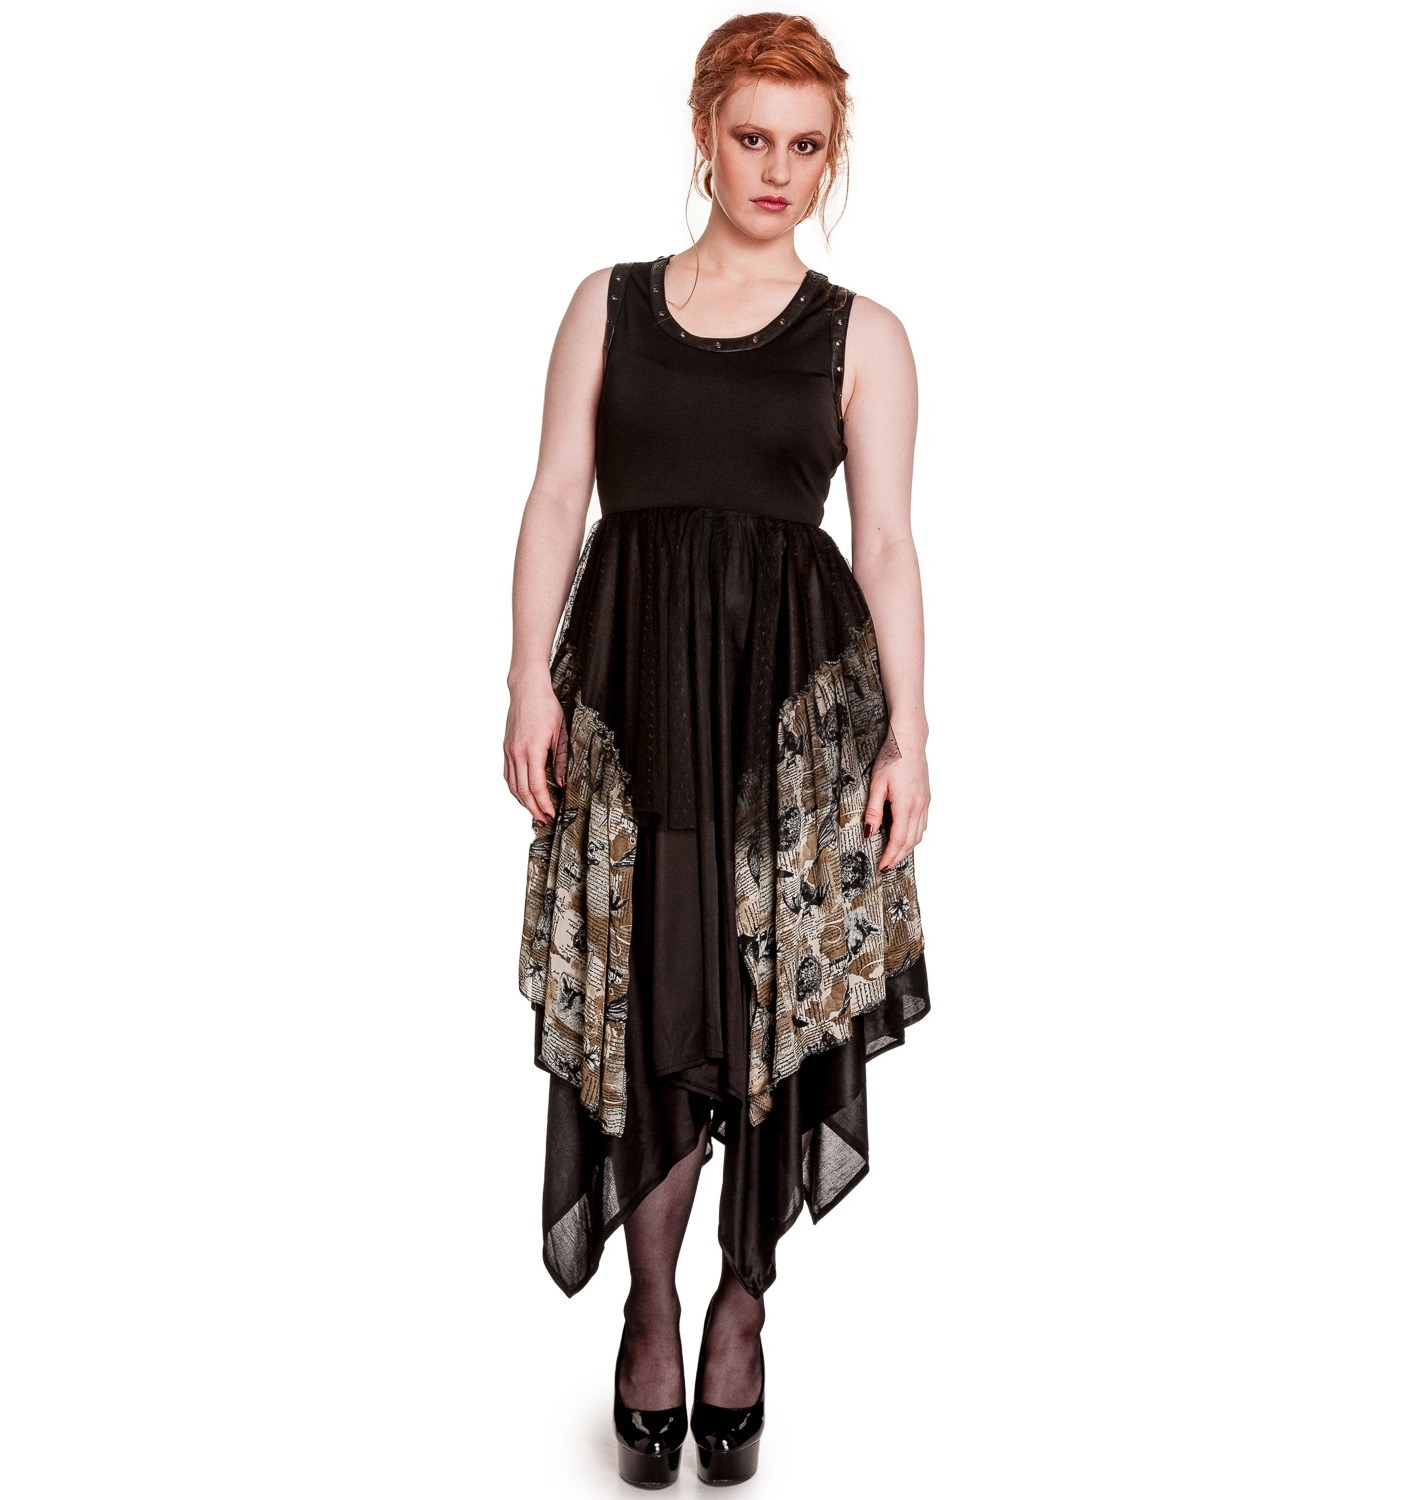 Hell-Bunny-Spin-Doctor-Goth-Black-Dress-ECLIPSE-Grunge-Steampunk-All-Sizes thumbnail 11